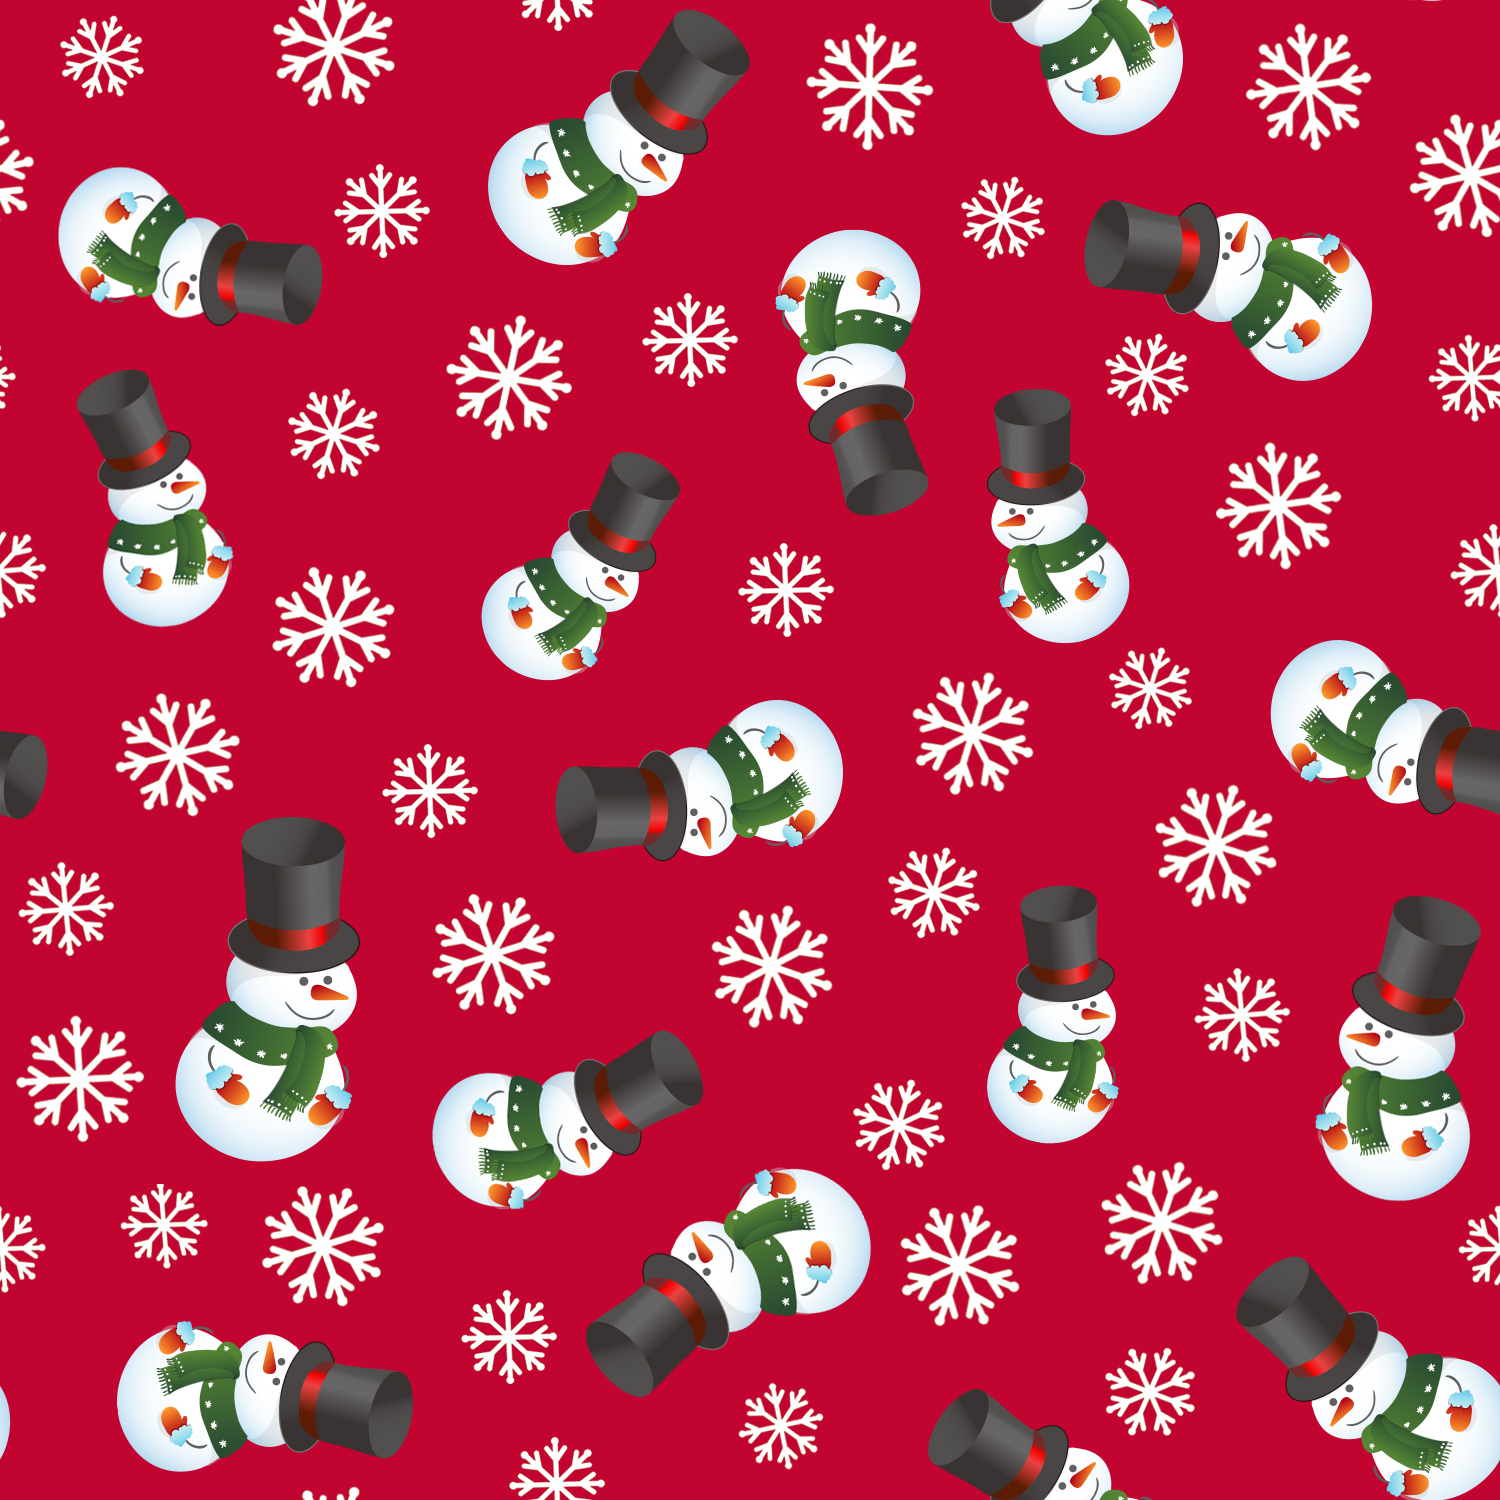 Christmas, Holiday Fabrics, Snowman Toss, 100% Cotton Print Fabric 44'' Wide, 140 Gsm, Quilt Crafts Cut By The Yard, RTC Fabrics